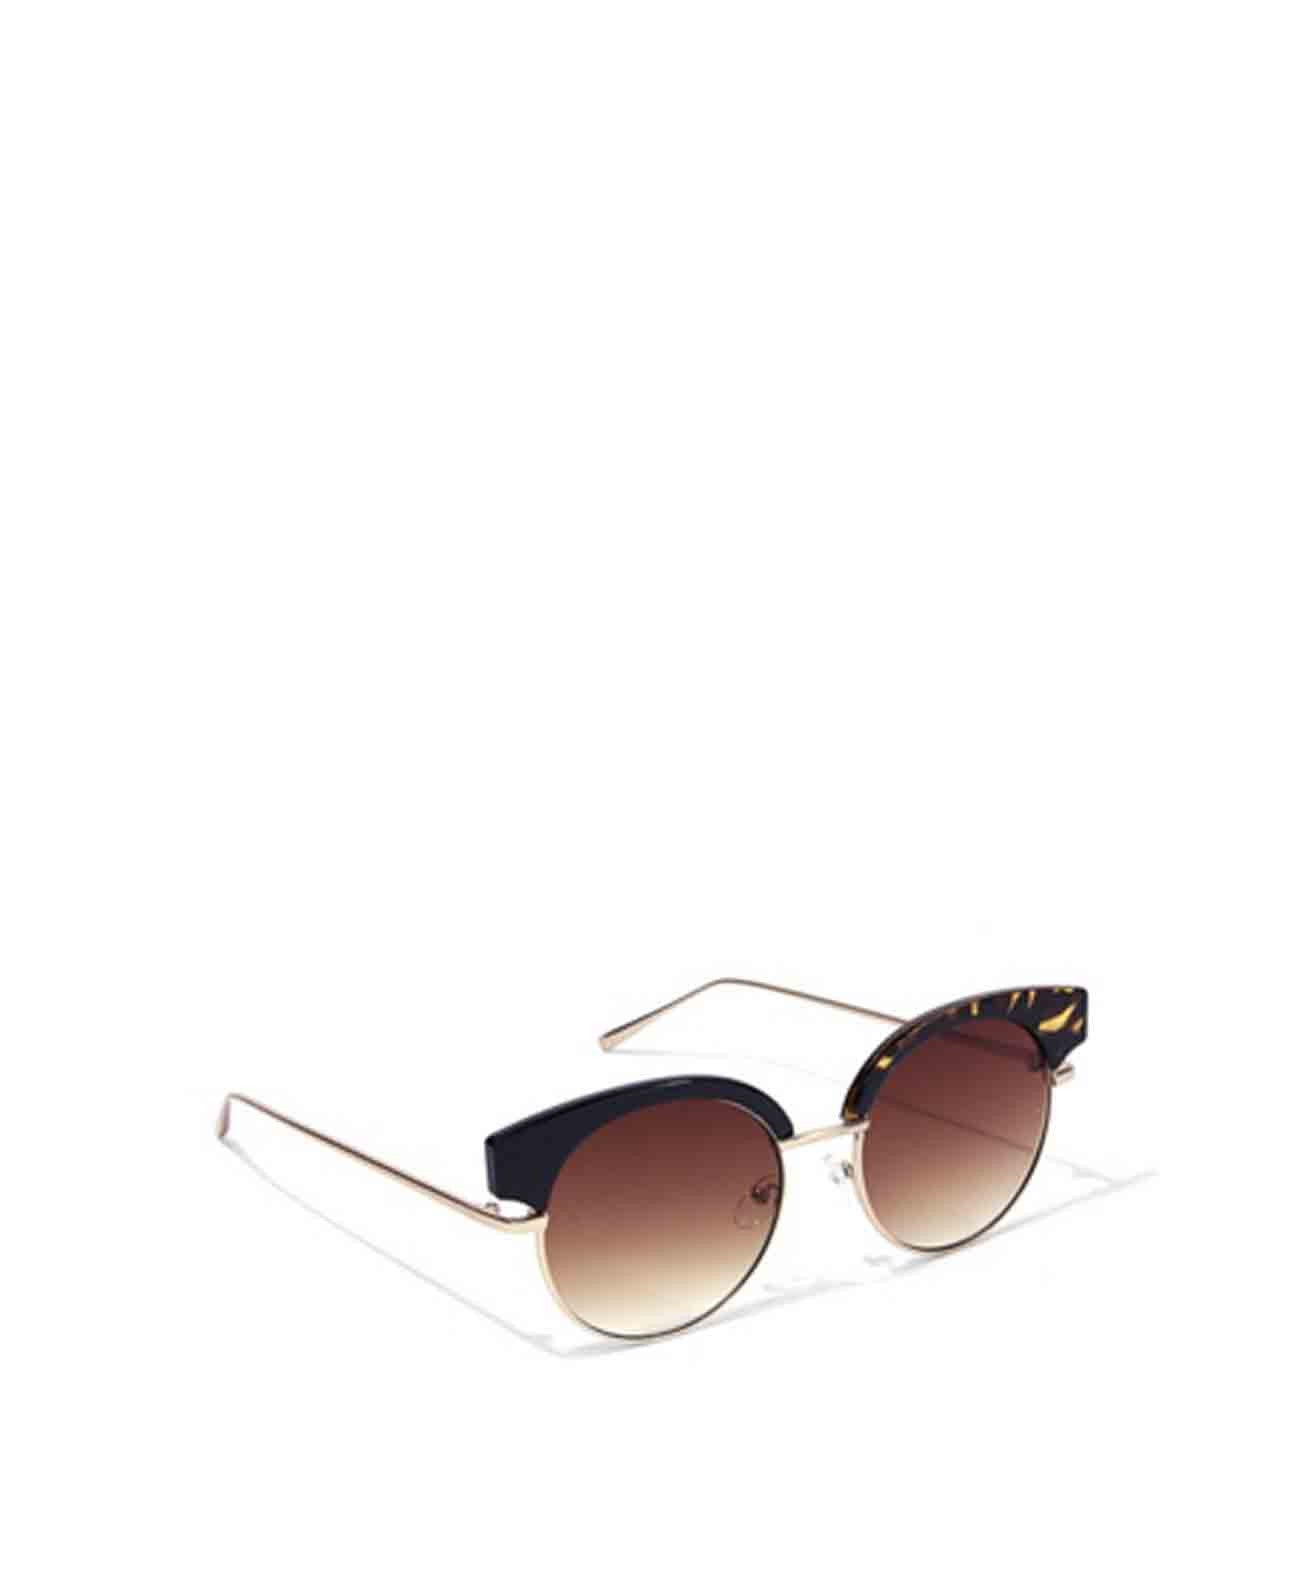 Tina Semi-rimless round sunglasses